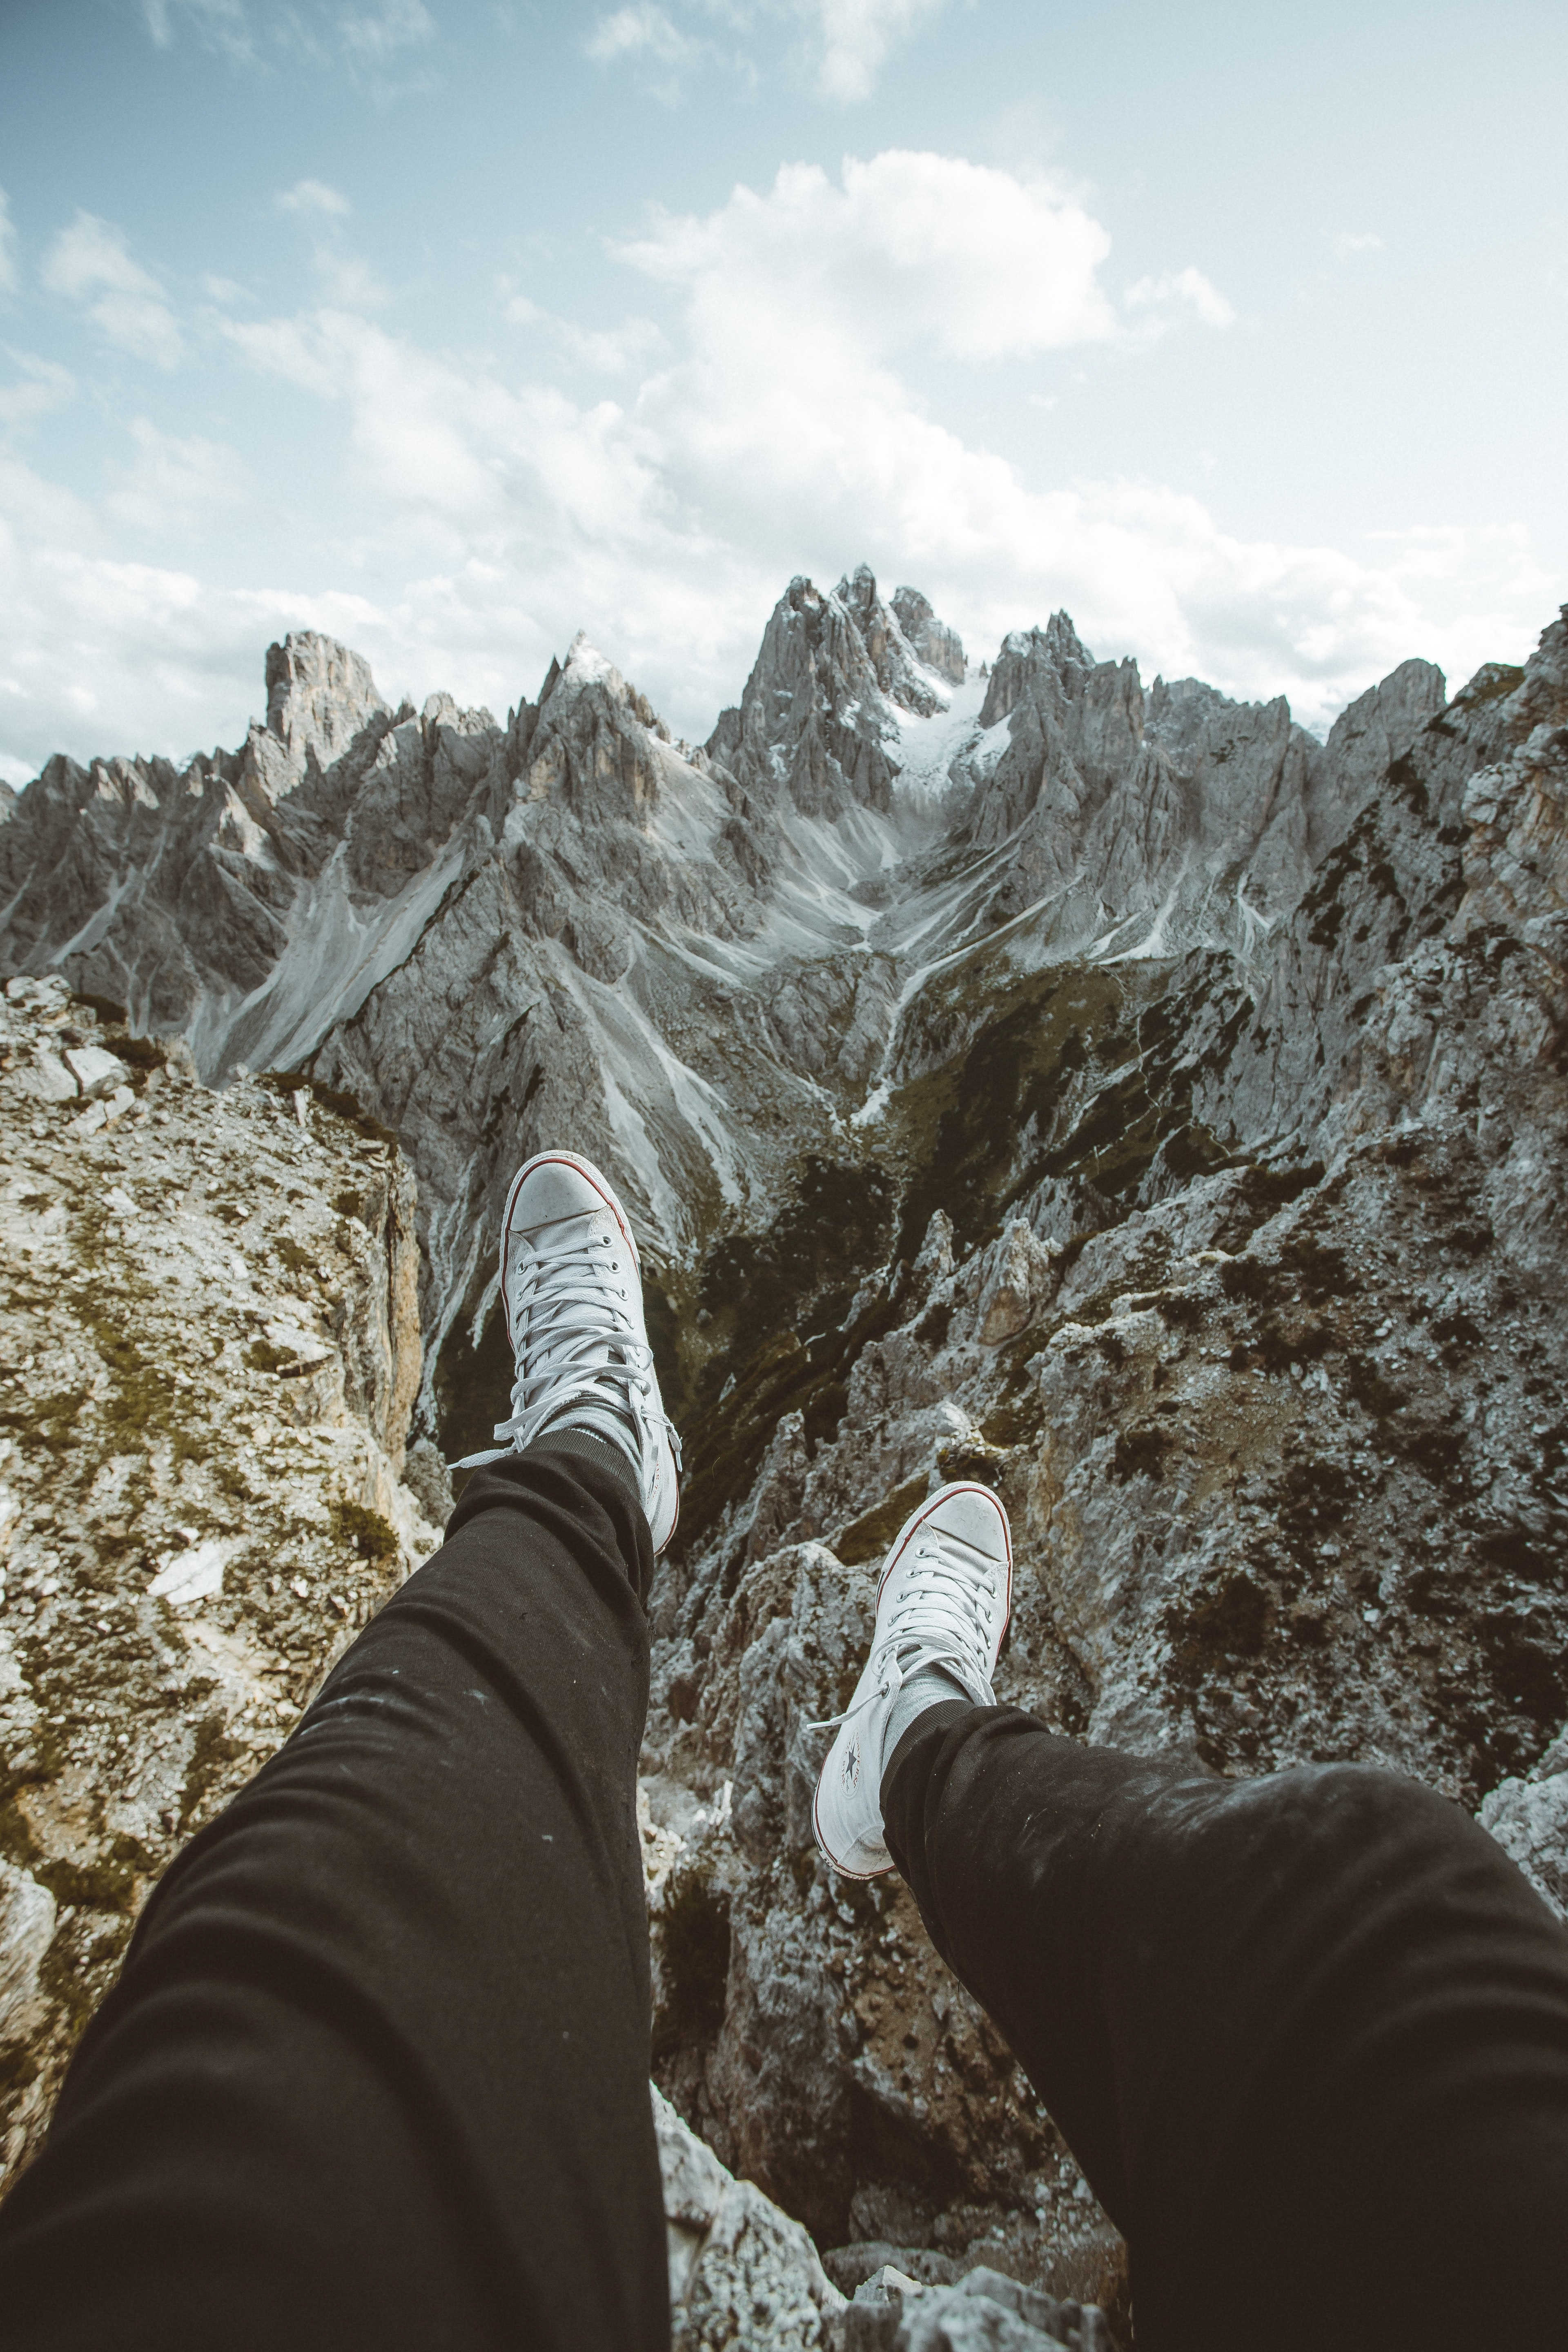 142517 download wallpaper Miscellanea, Miscellaneous, Legs, Sneakers, Shoes, Mountains screensavers and pictures for free